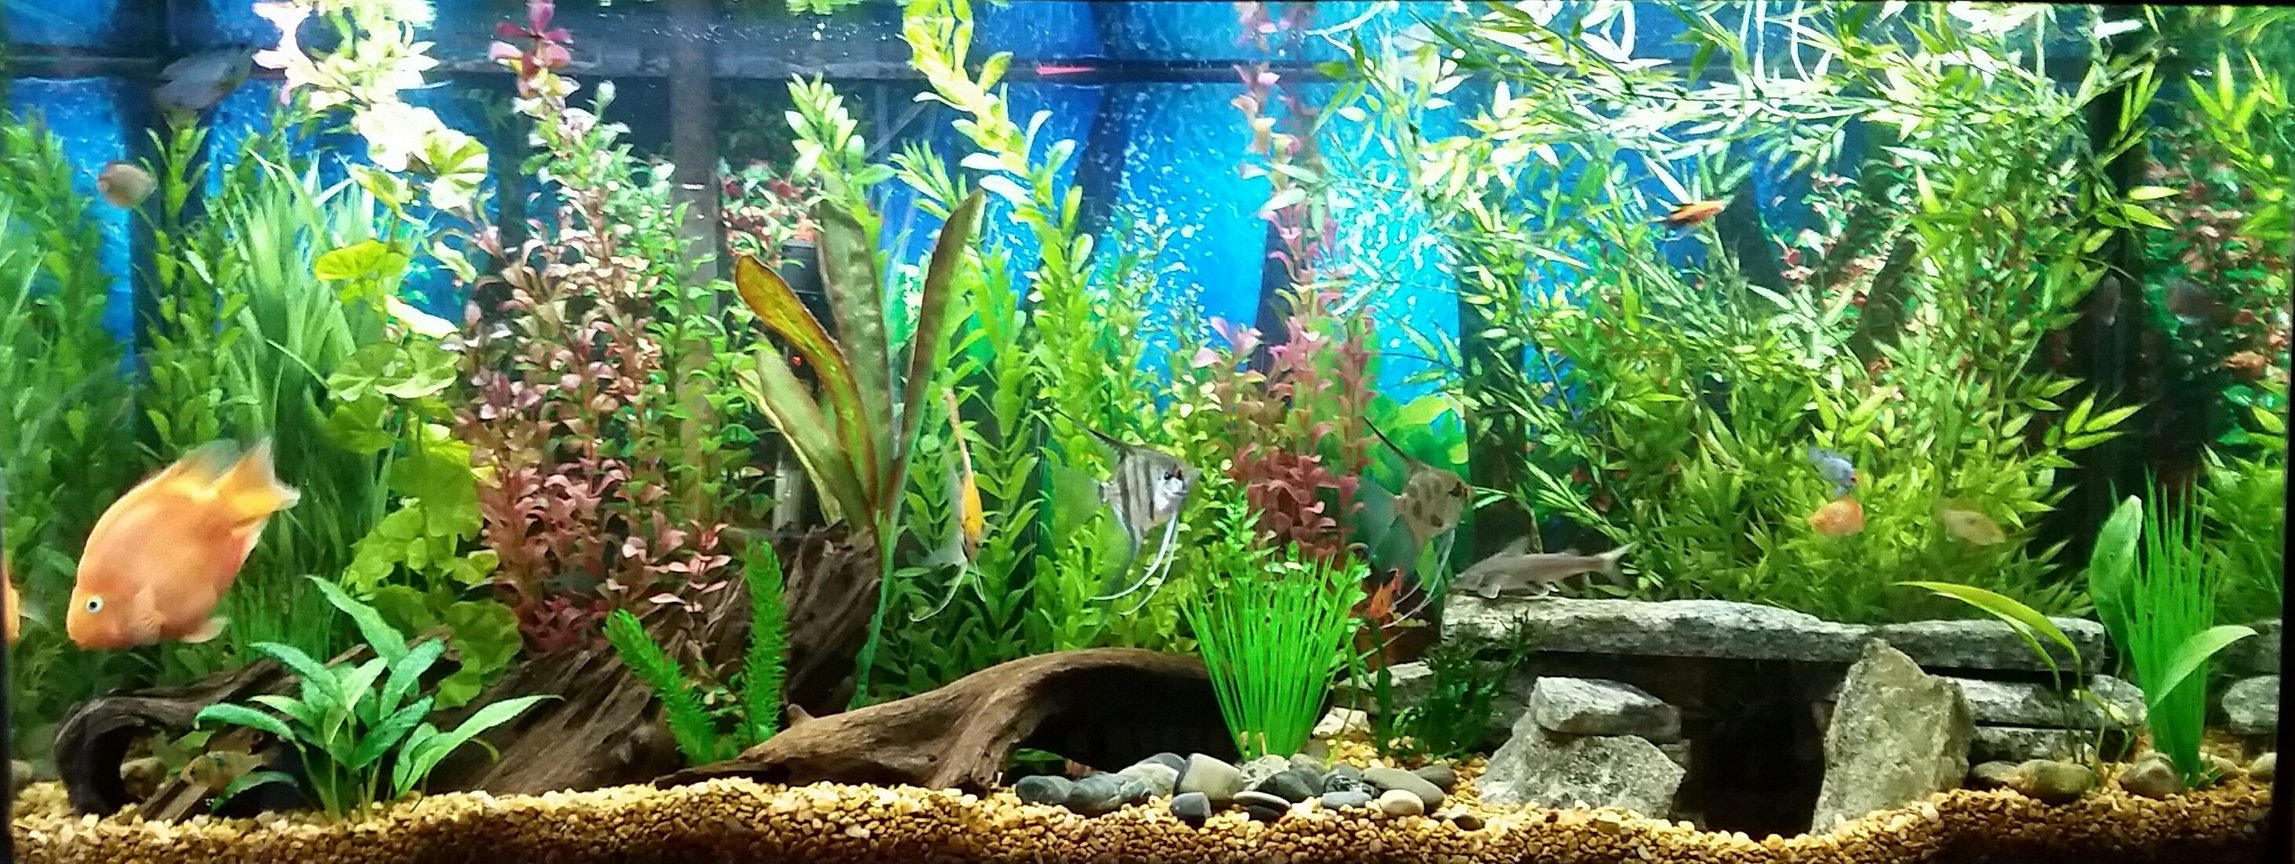 55 gallons freshwater fish tank (mostly fish and non-living decorations) - 55 gallon freshwater tropical fish tank. Fish in my tank are: Electric Blue Cichlid, German Blue Ram, Blood Parrot, Blue Gourami, Gold Gourami, Marble Veil Angel, Assorted Veil Angel, Upside Down Catfish, Pictus Cat, Rainbow Shark, Otocinclus Catfish, Red Minor Serpae Tetra, Red Wag Swordtail, Red Platy, Silver Hatchet, Columbian Shark, African Butterfly fish.